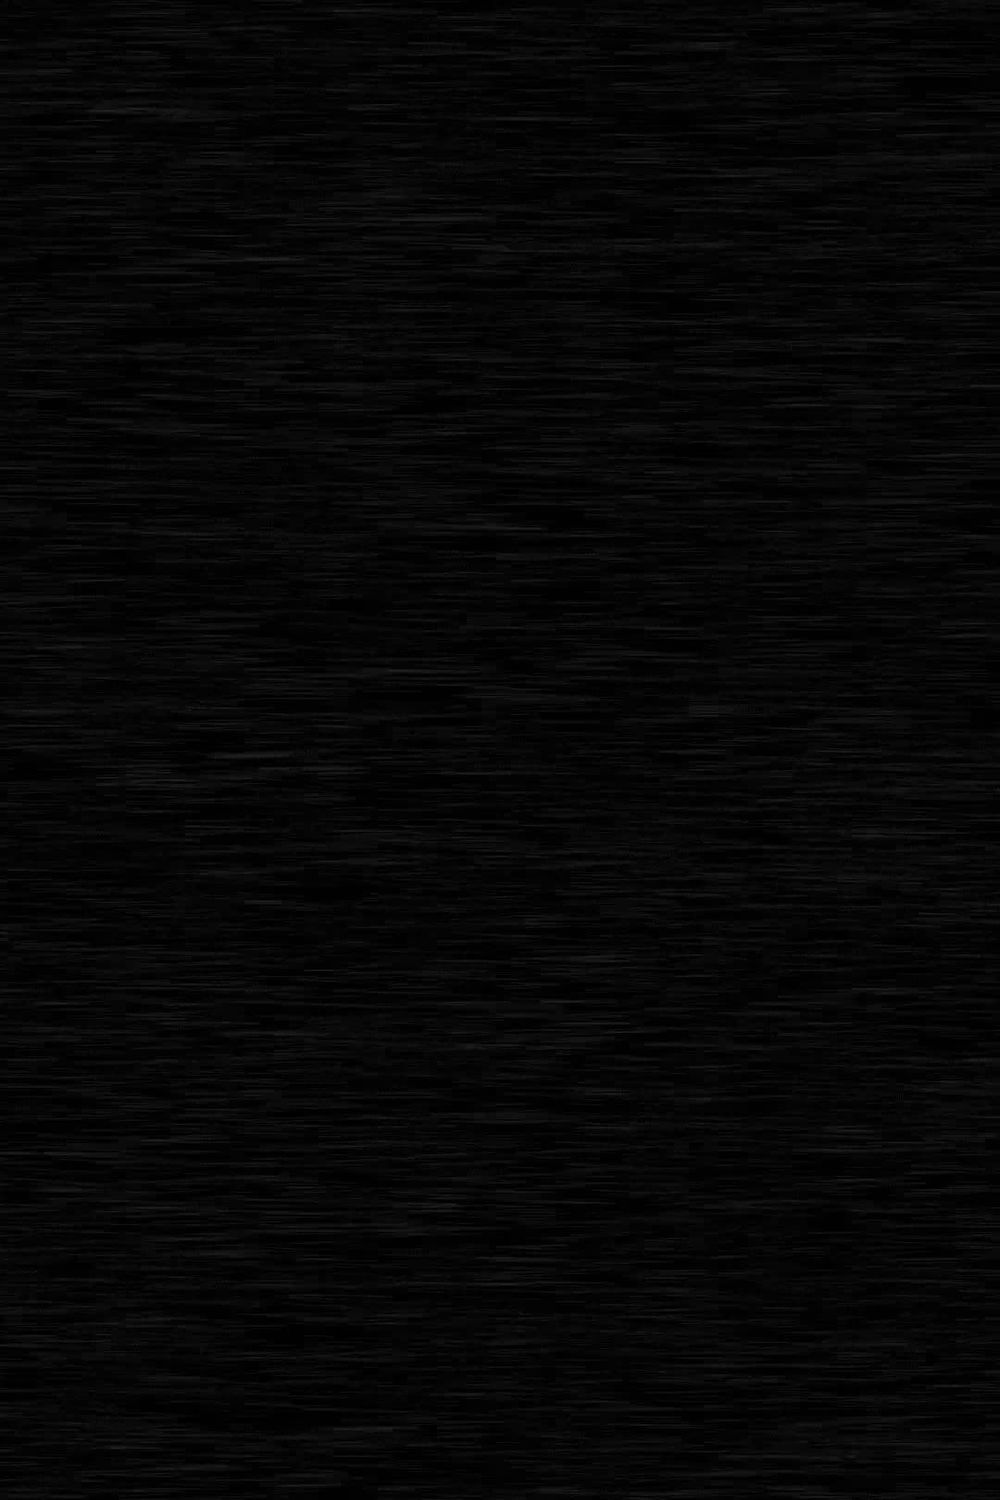 Download Cool Plain Black Wallpaper Iphone for iPhone 11 Pro Max 2020